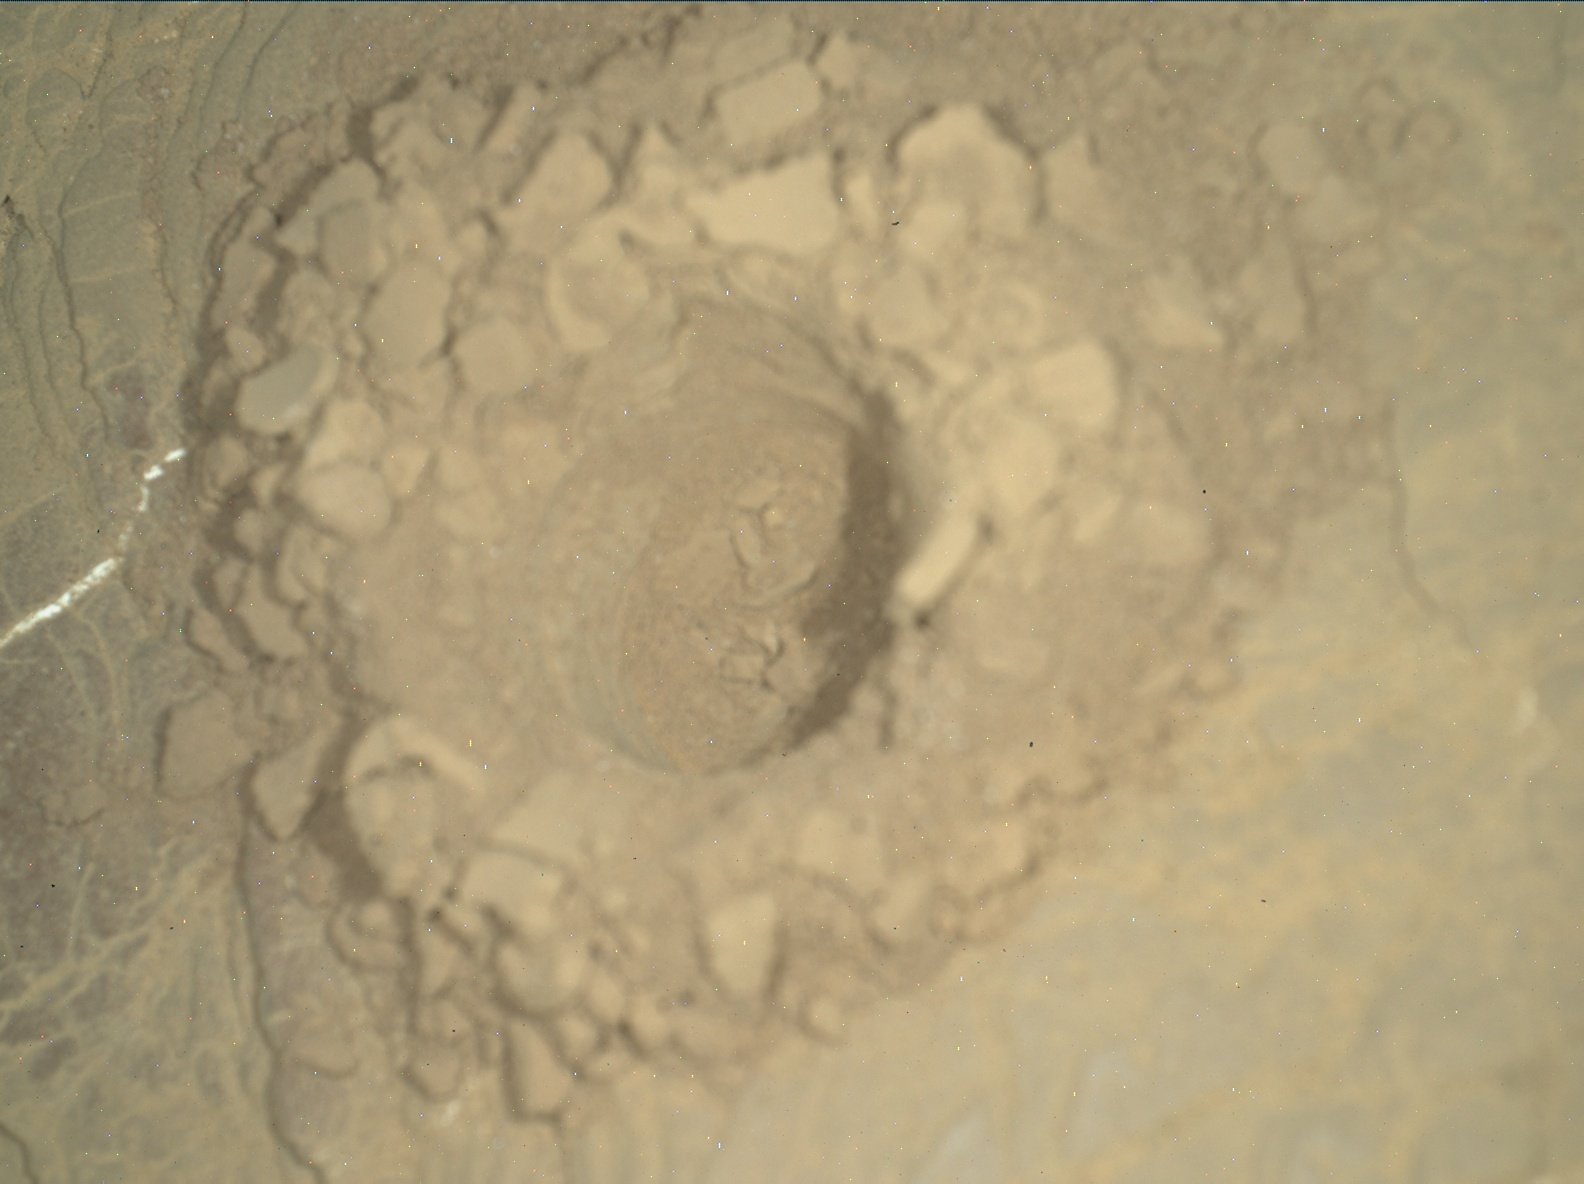 Nasa's Mars rover Curiosity acquired this image using its Mars Hand Lens Imager (MAHLI) on Sol 2524